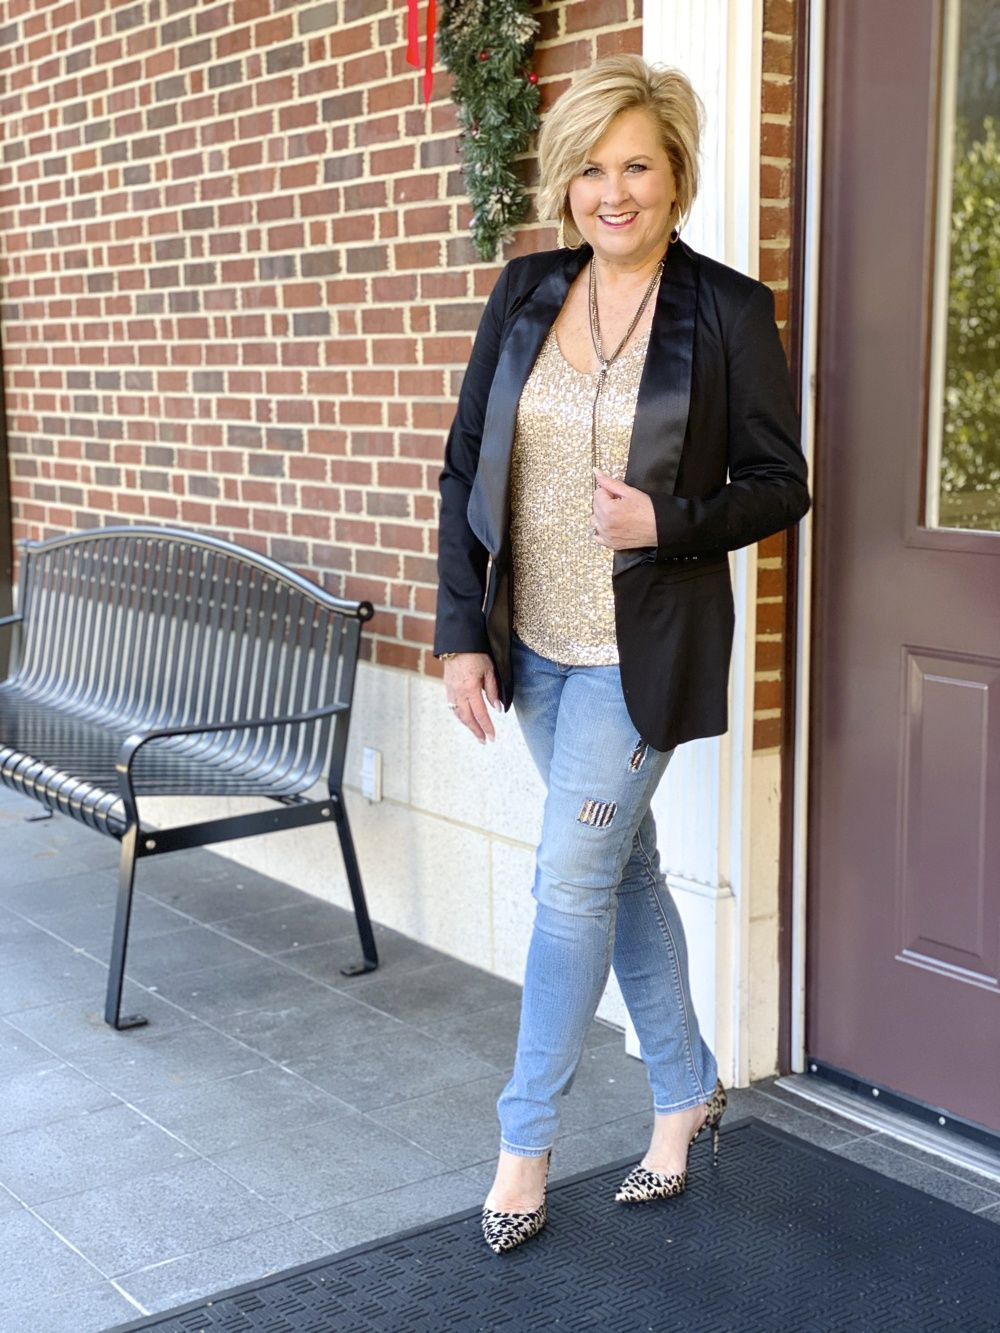 New Year S Eve Outfit Inspiration By Three Bloggers 50 Is Not Old In 2020 New Years Eve Outfits New Years Eve Outfit Casual Eve Outfit